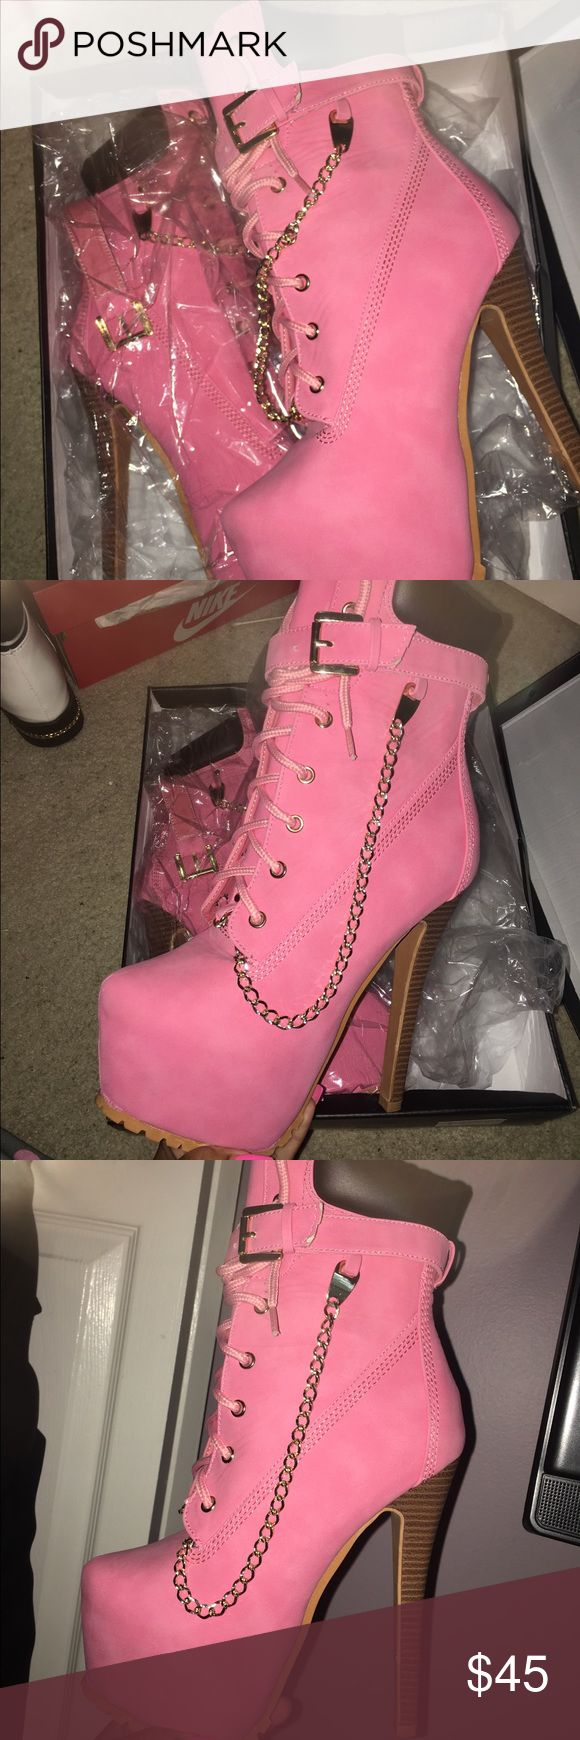 Pink Timberland Boot Heels (Pink Timberland Boot Heels) Size: 7.5 Heels: 7in platform Shoes Heeled Boots